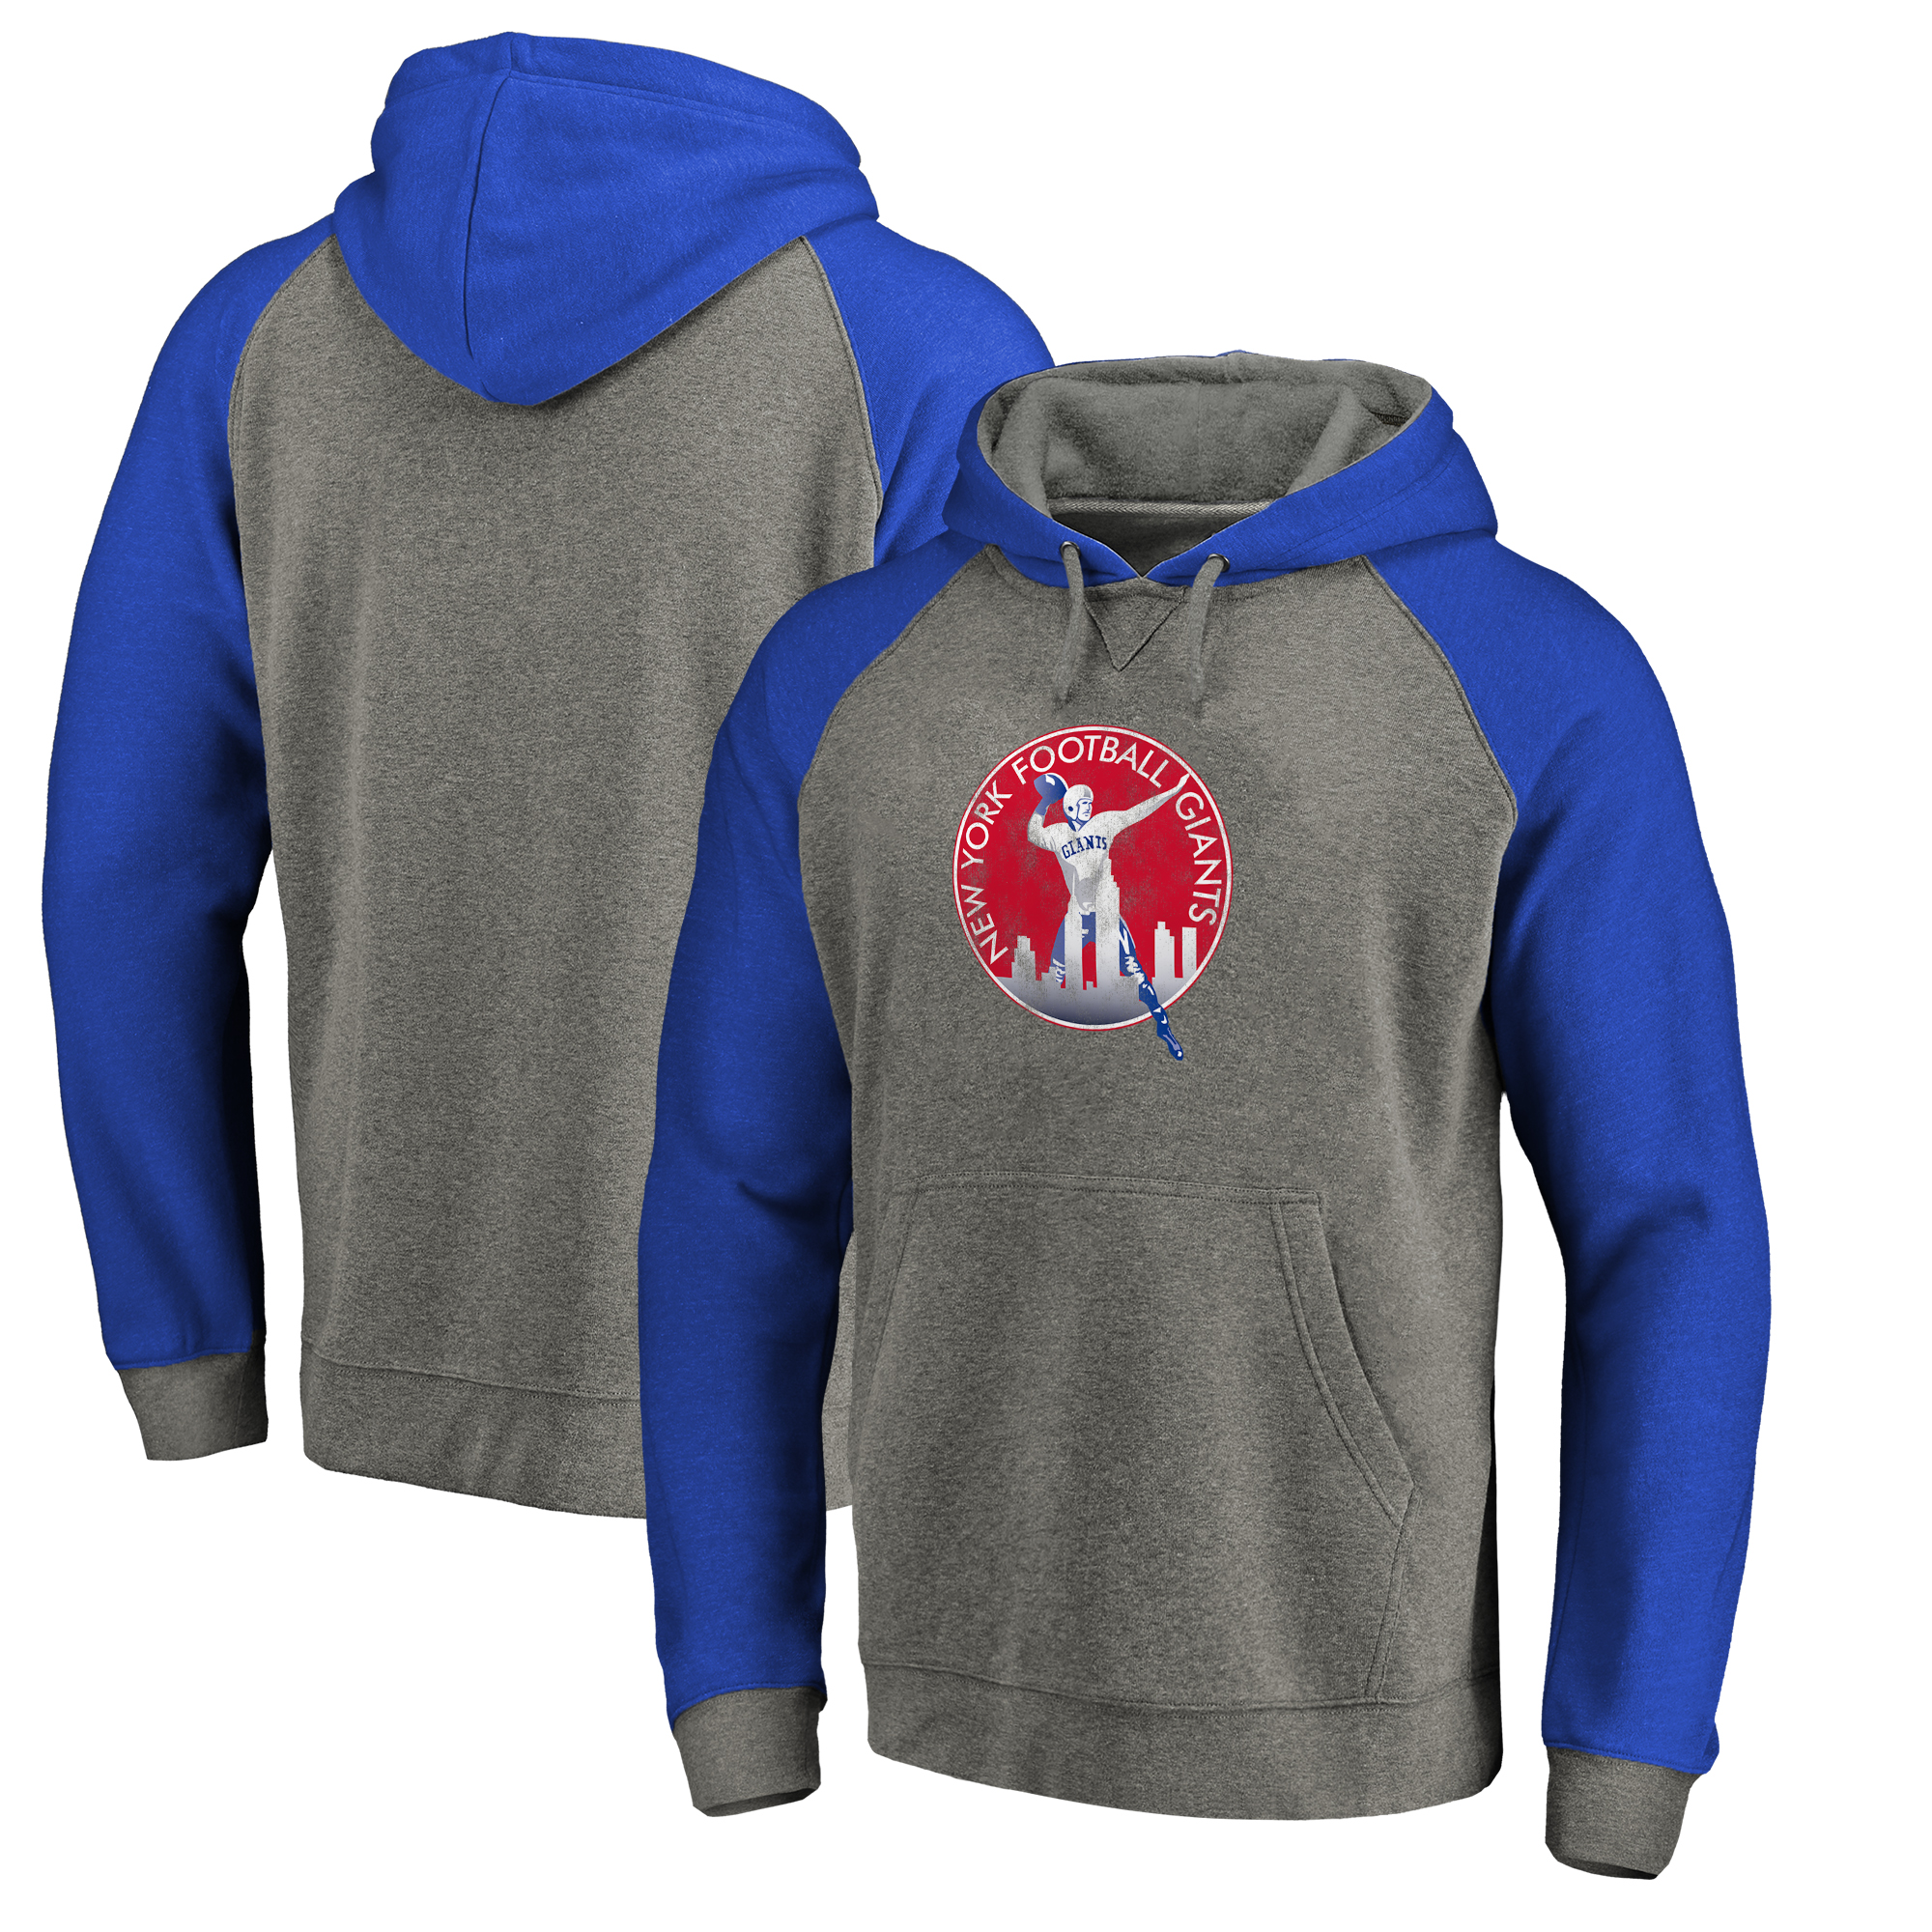 New York Giants NFL Pro Line by Fanatics Branded Throwback Logo Tri-Blend Raglan Pullover Hoodie - Gray/Royal